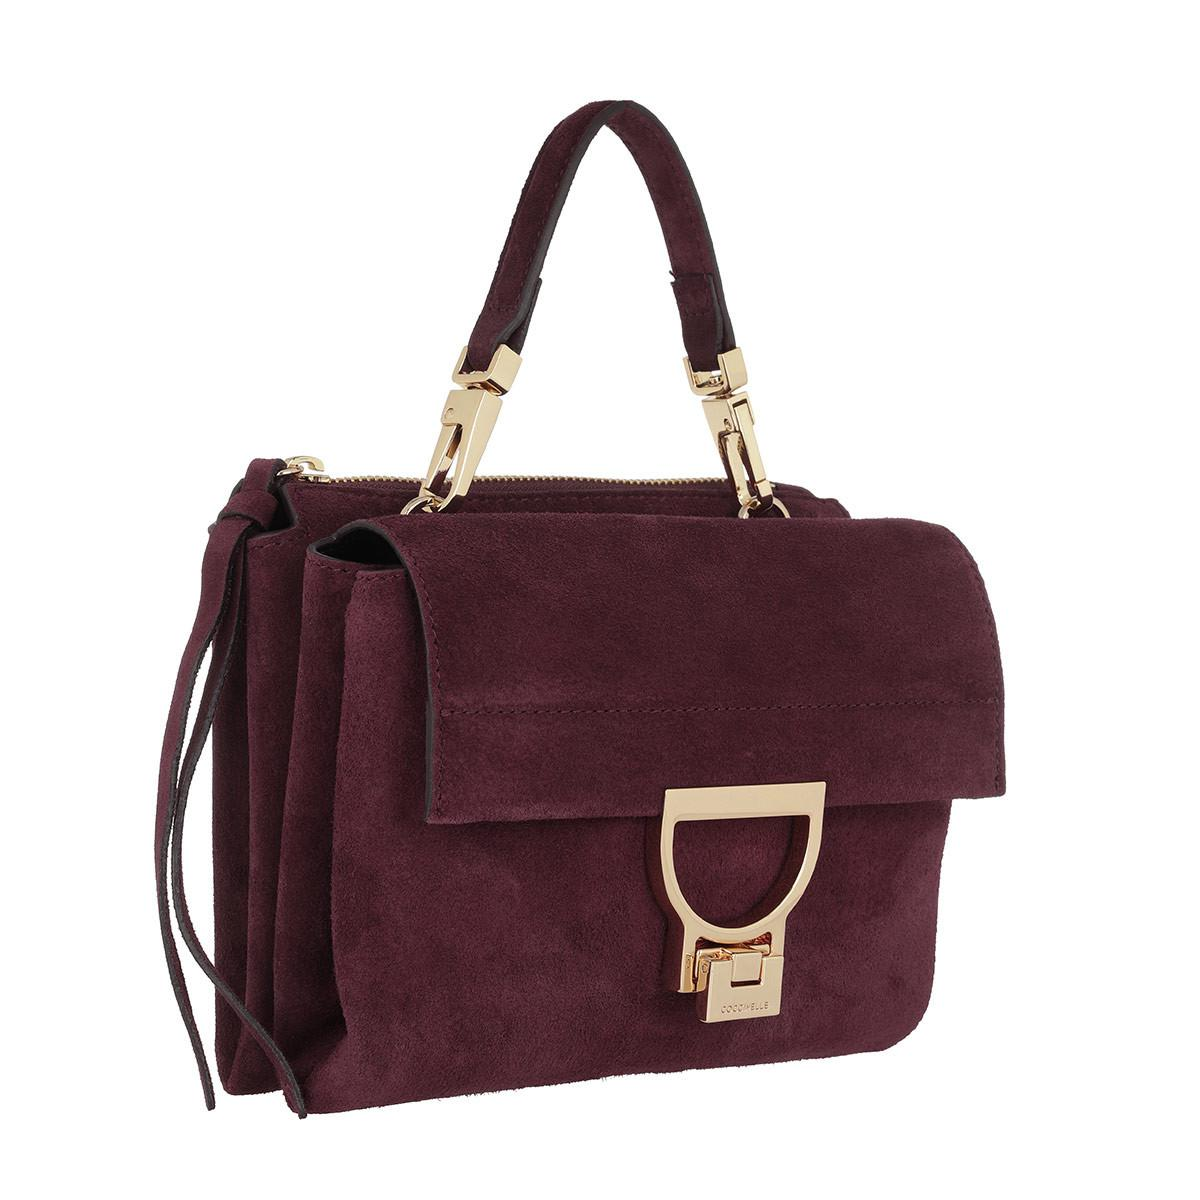 Coccinelle Arlettis Suede Crossbody Bag Grape in Red